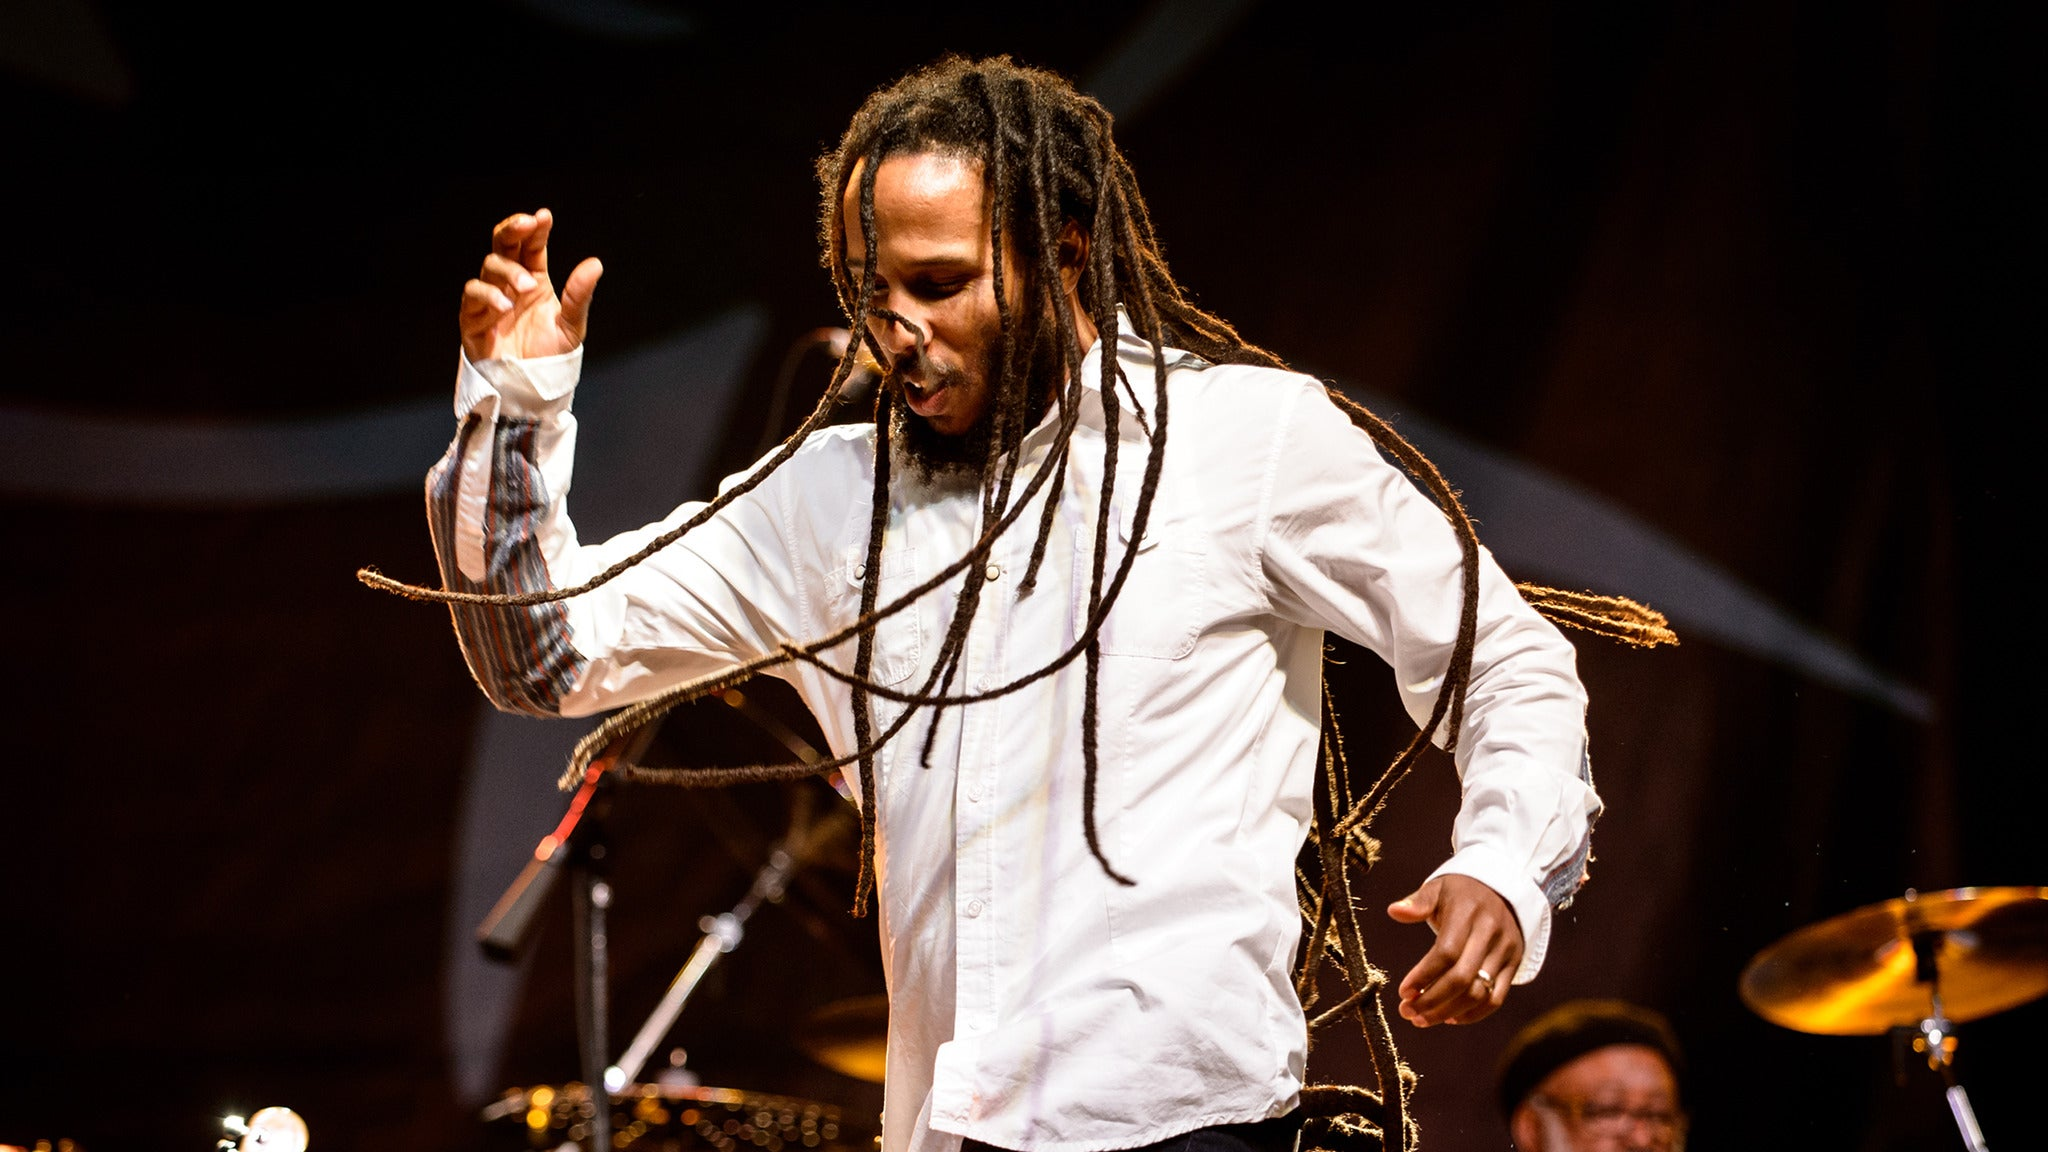 ZIGGY MARLEY at The Fillmore